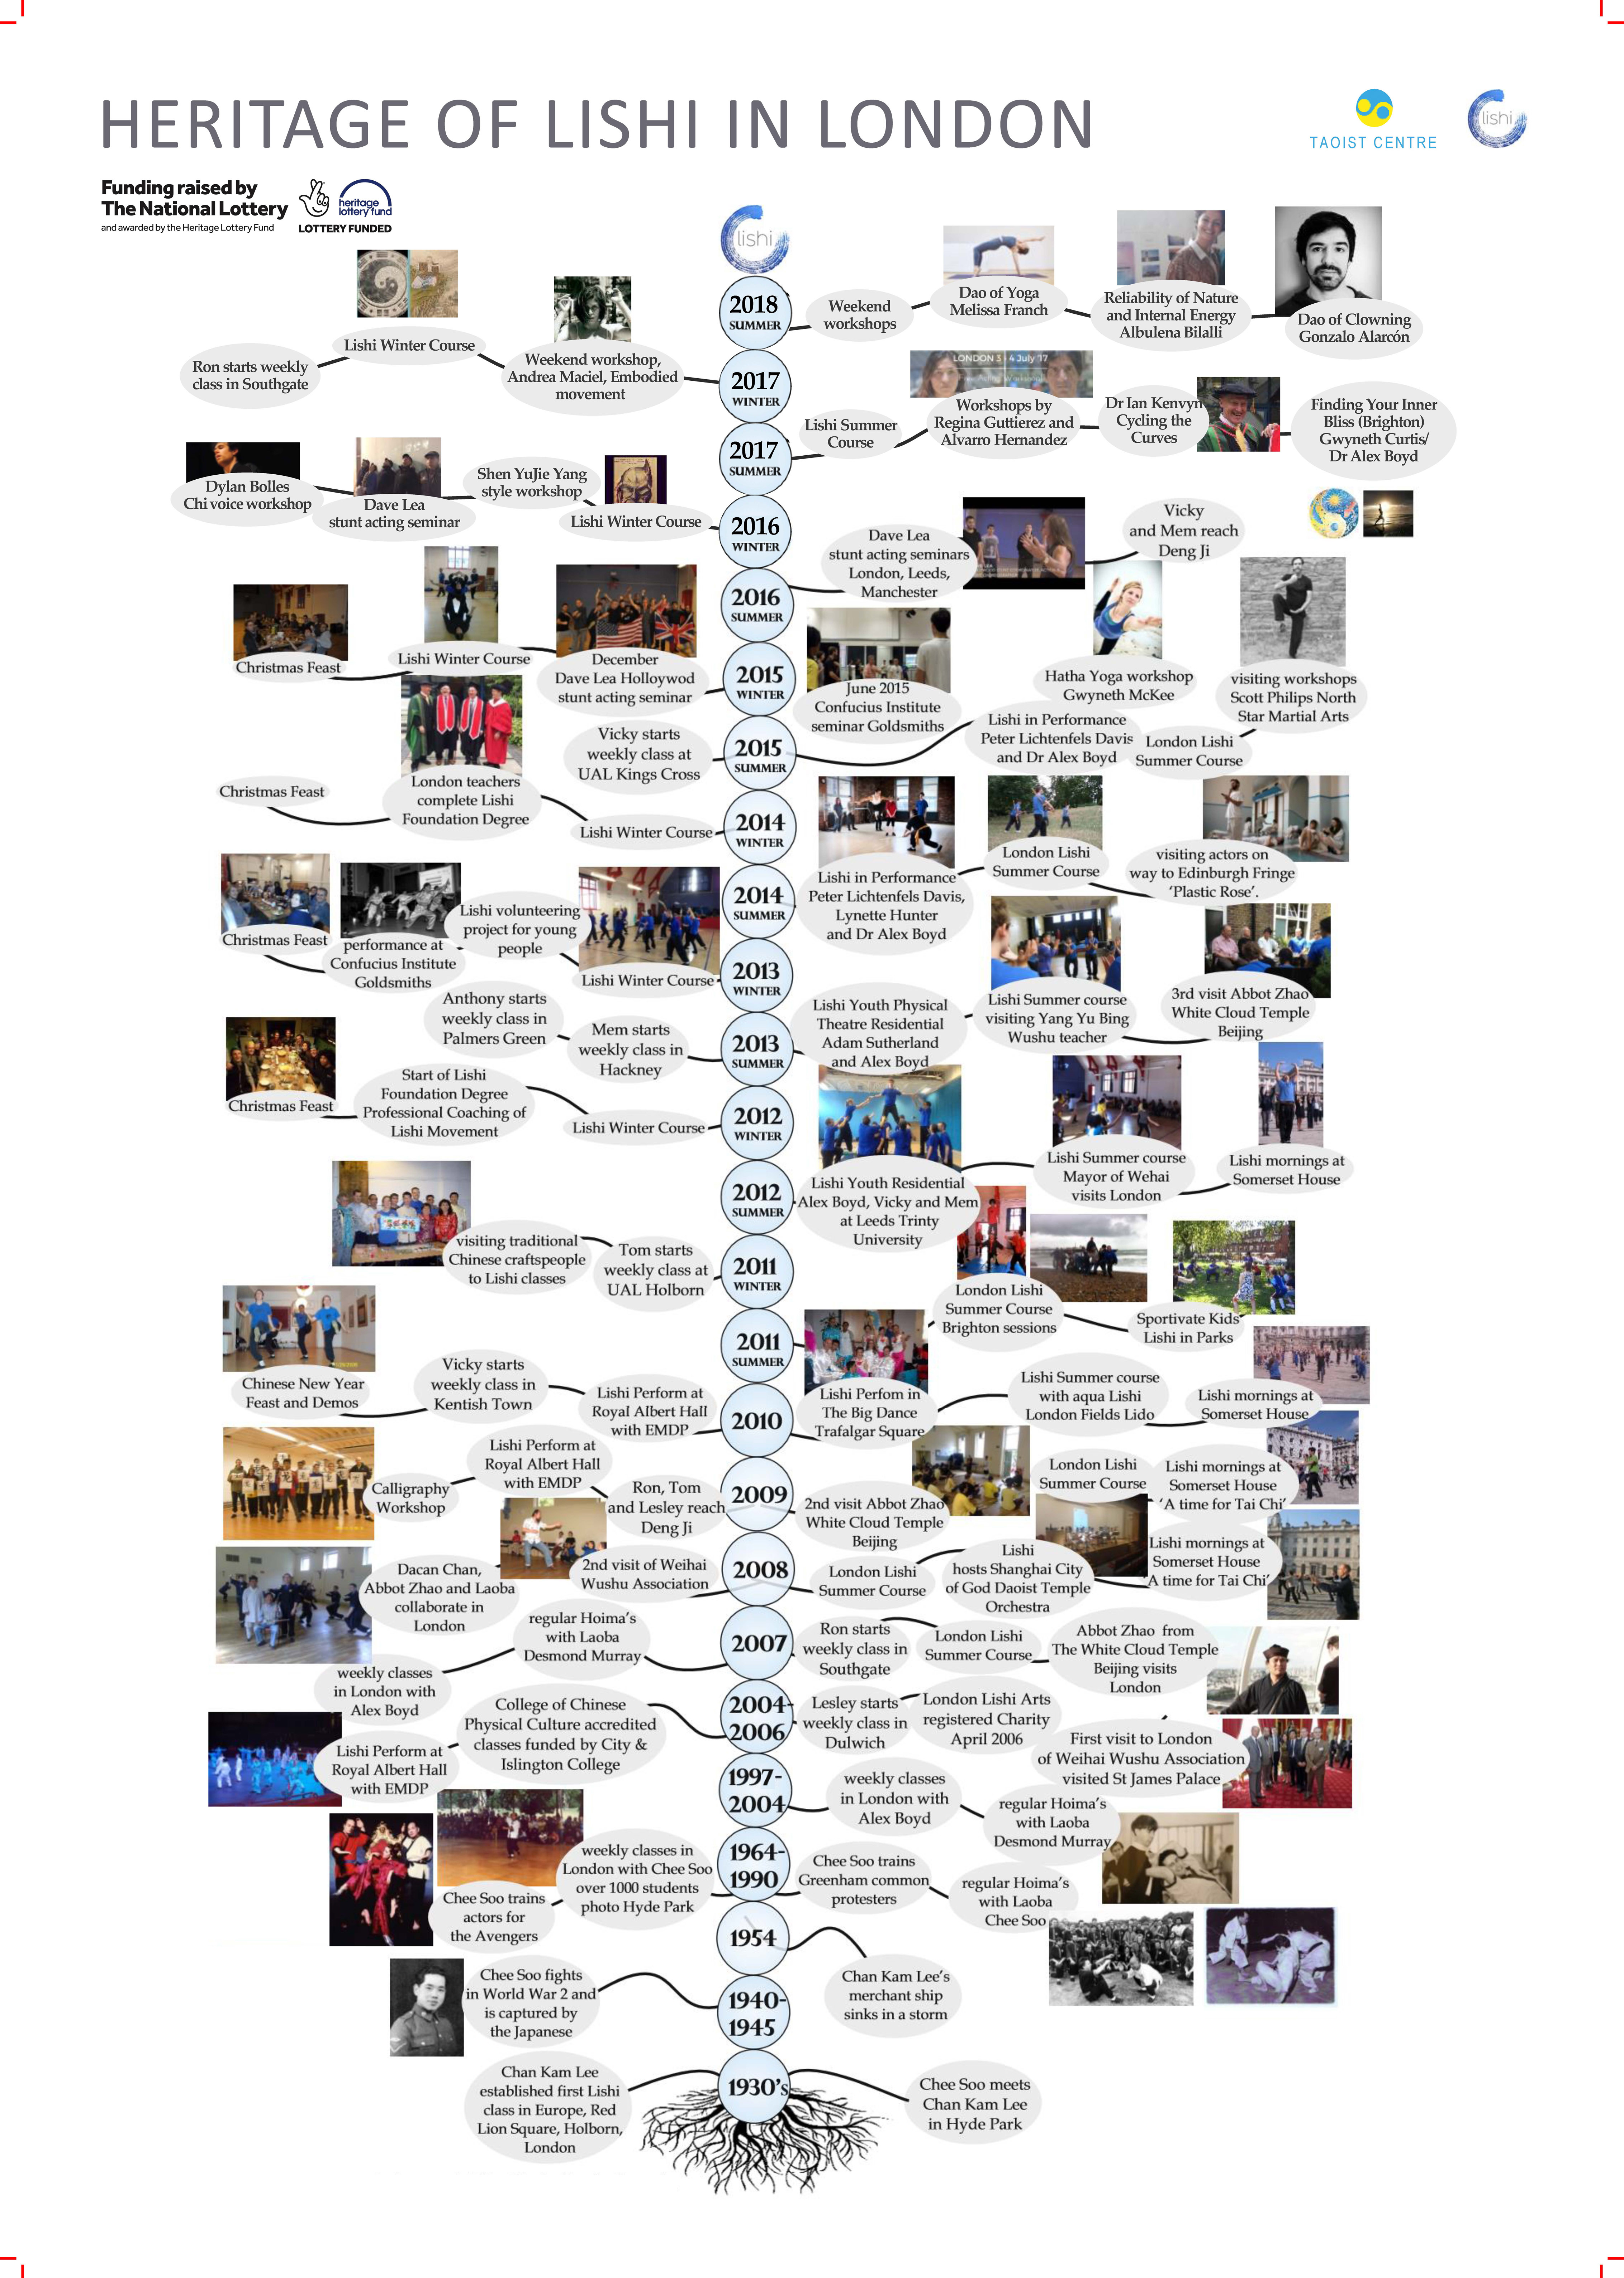 Photo showing the genealogy of the Lishi Taoist Centre arts in London.